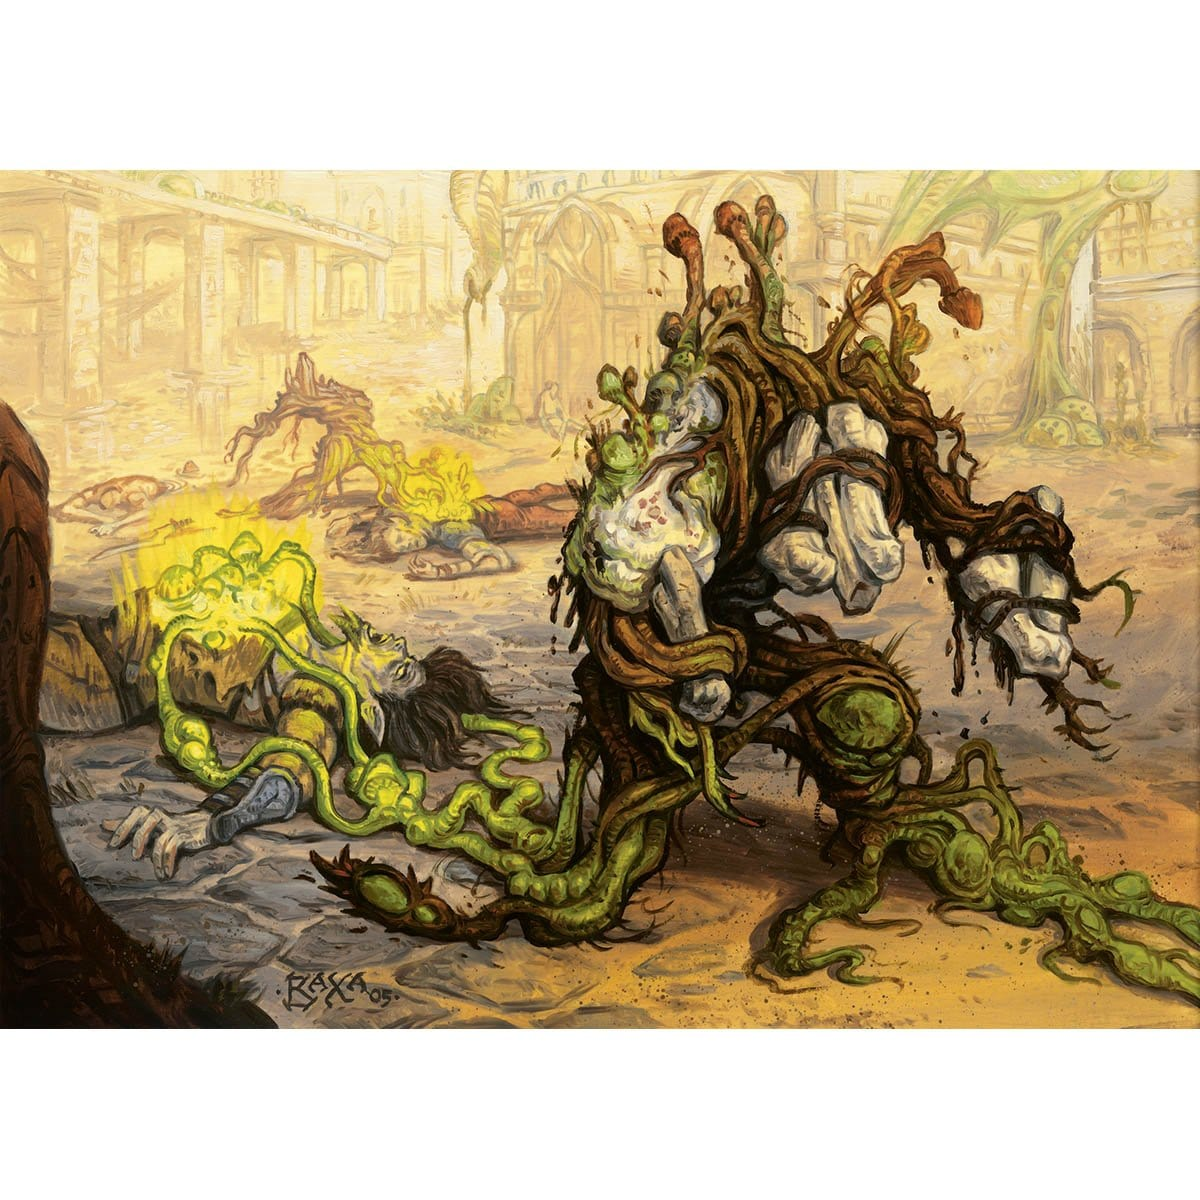 Golgari Germination Print - Print - Original Magic Art - Accessories for Magic the Gathering and other card games